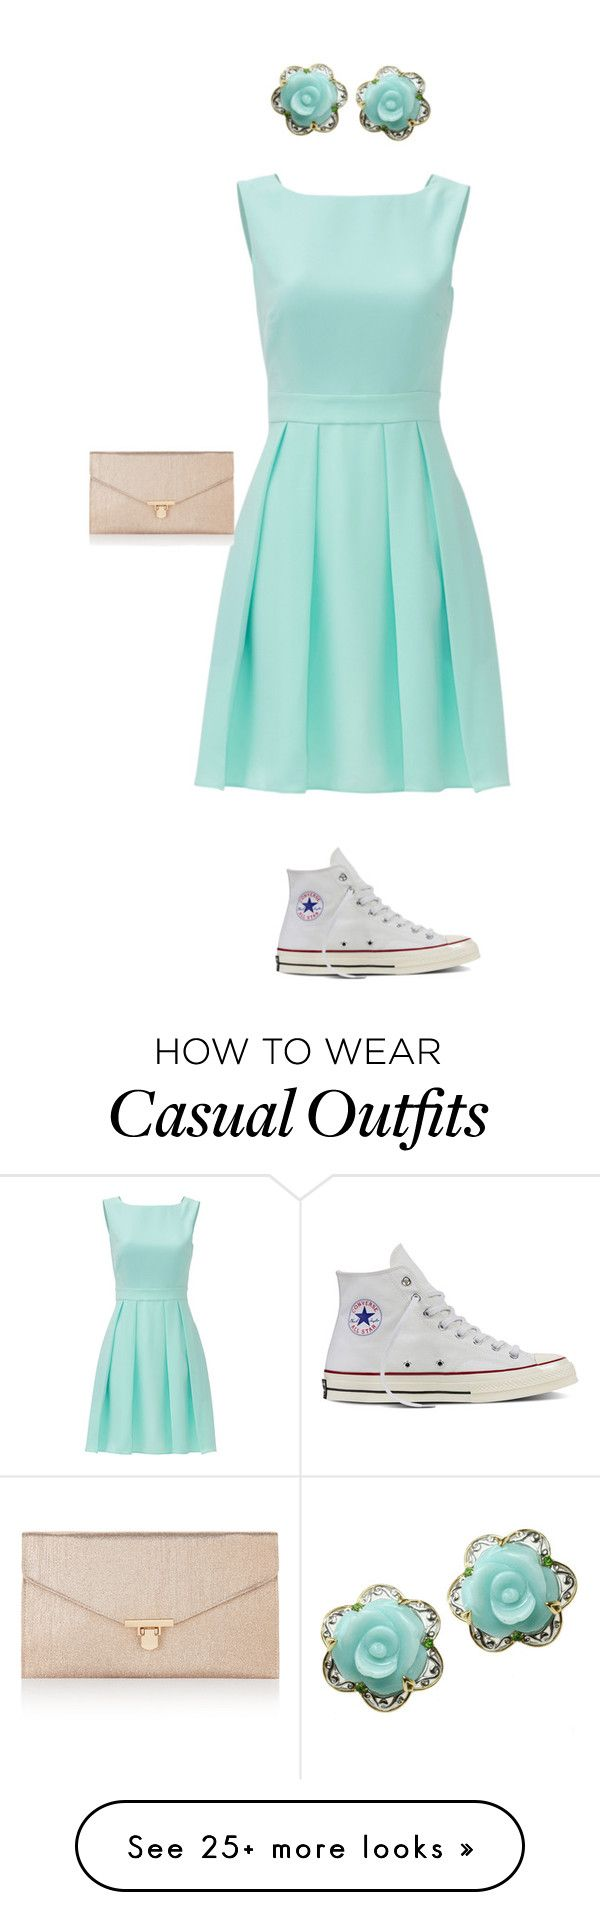 157 best Fanfiction outfits images on Pinterest | Cute outfits ...